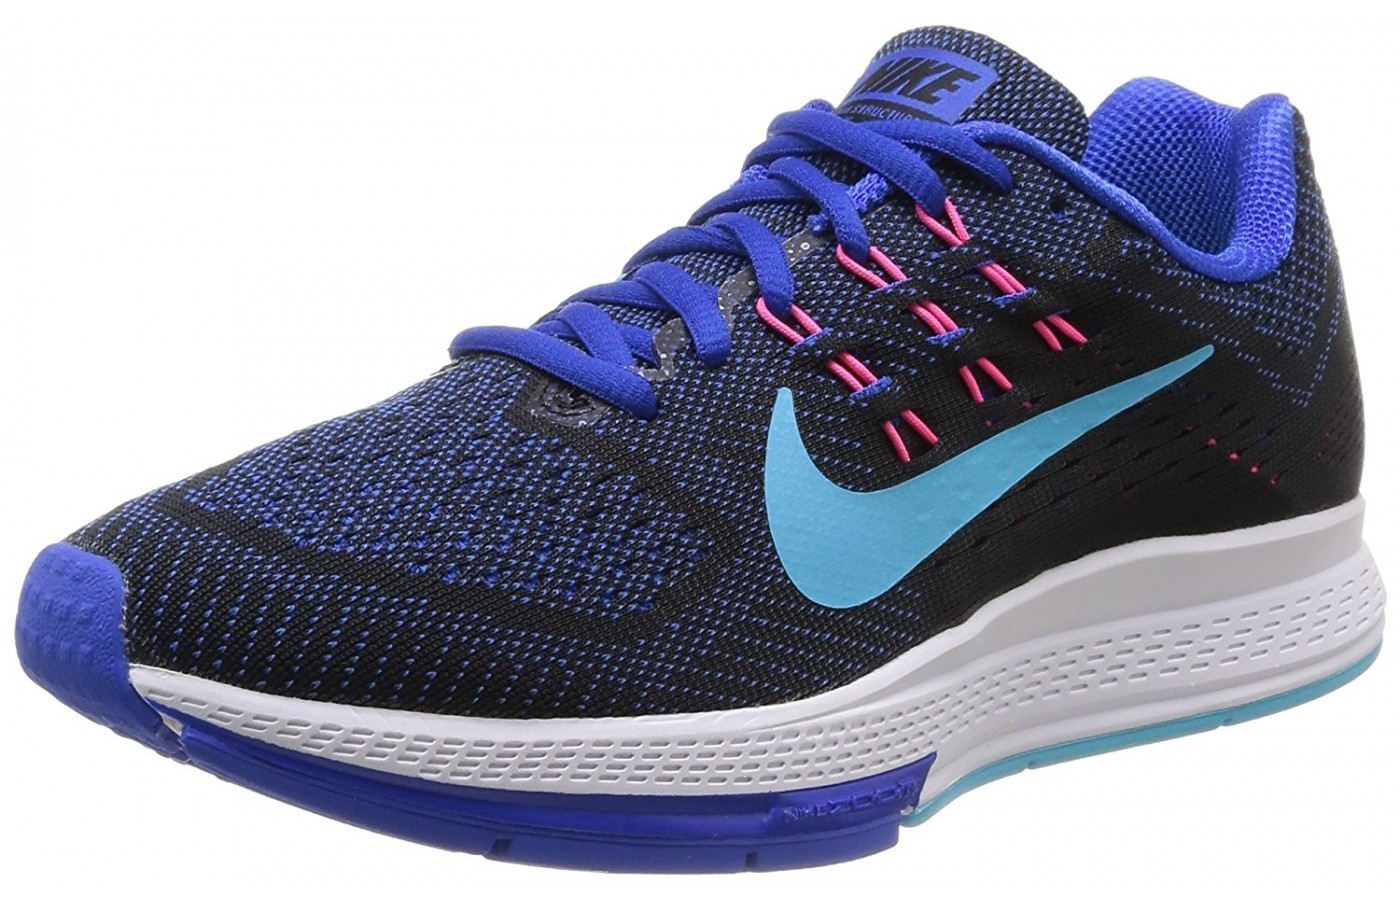 the best attitude 12407 56950 A three quarter view of the Nike Air Zoom Structure running shoe .